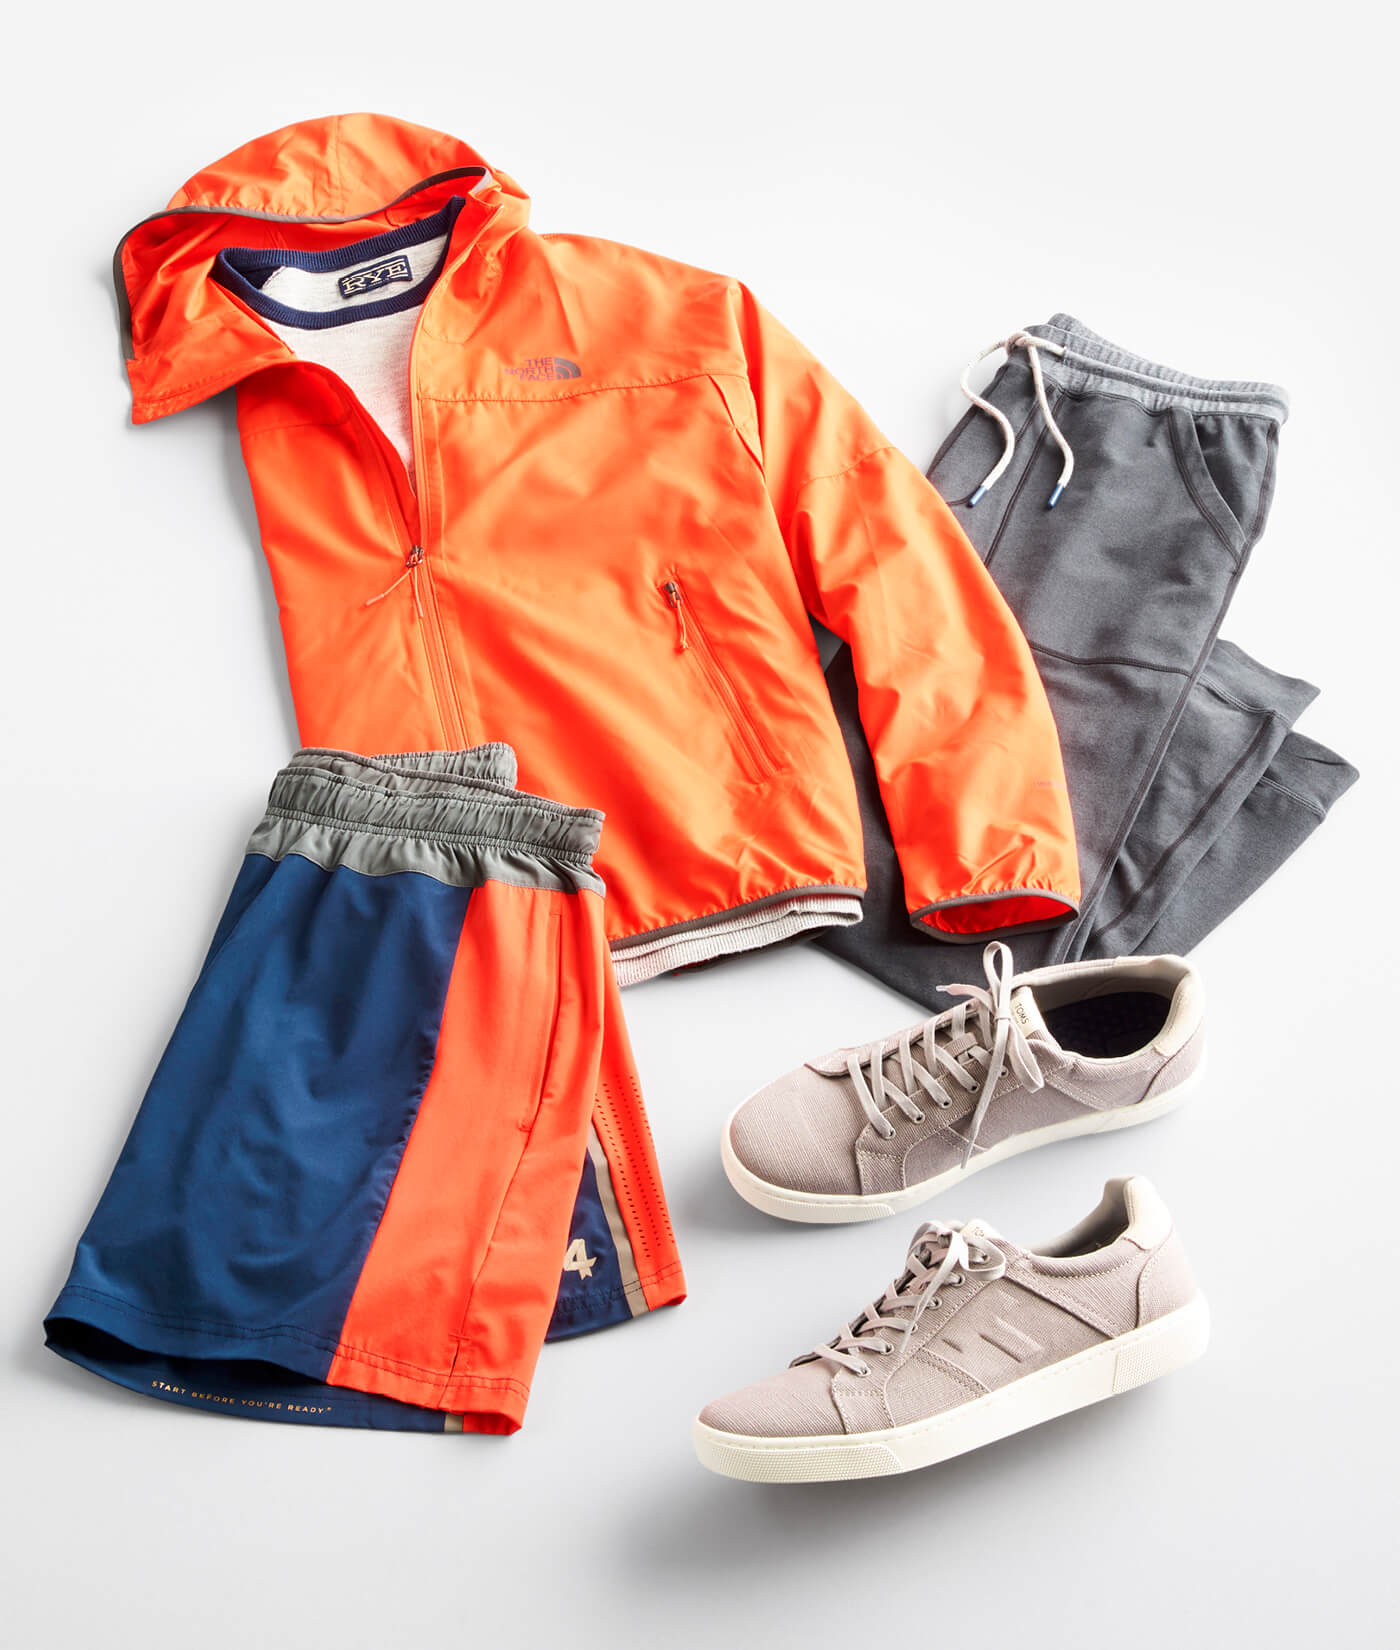 orange jacket, shorts and sneakers